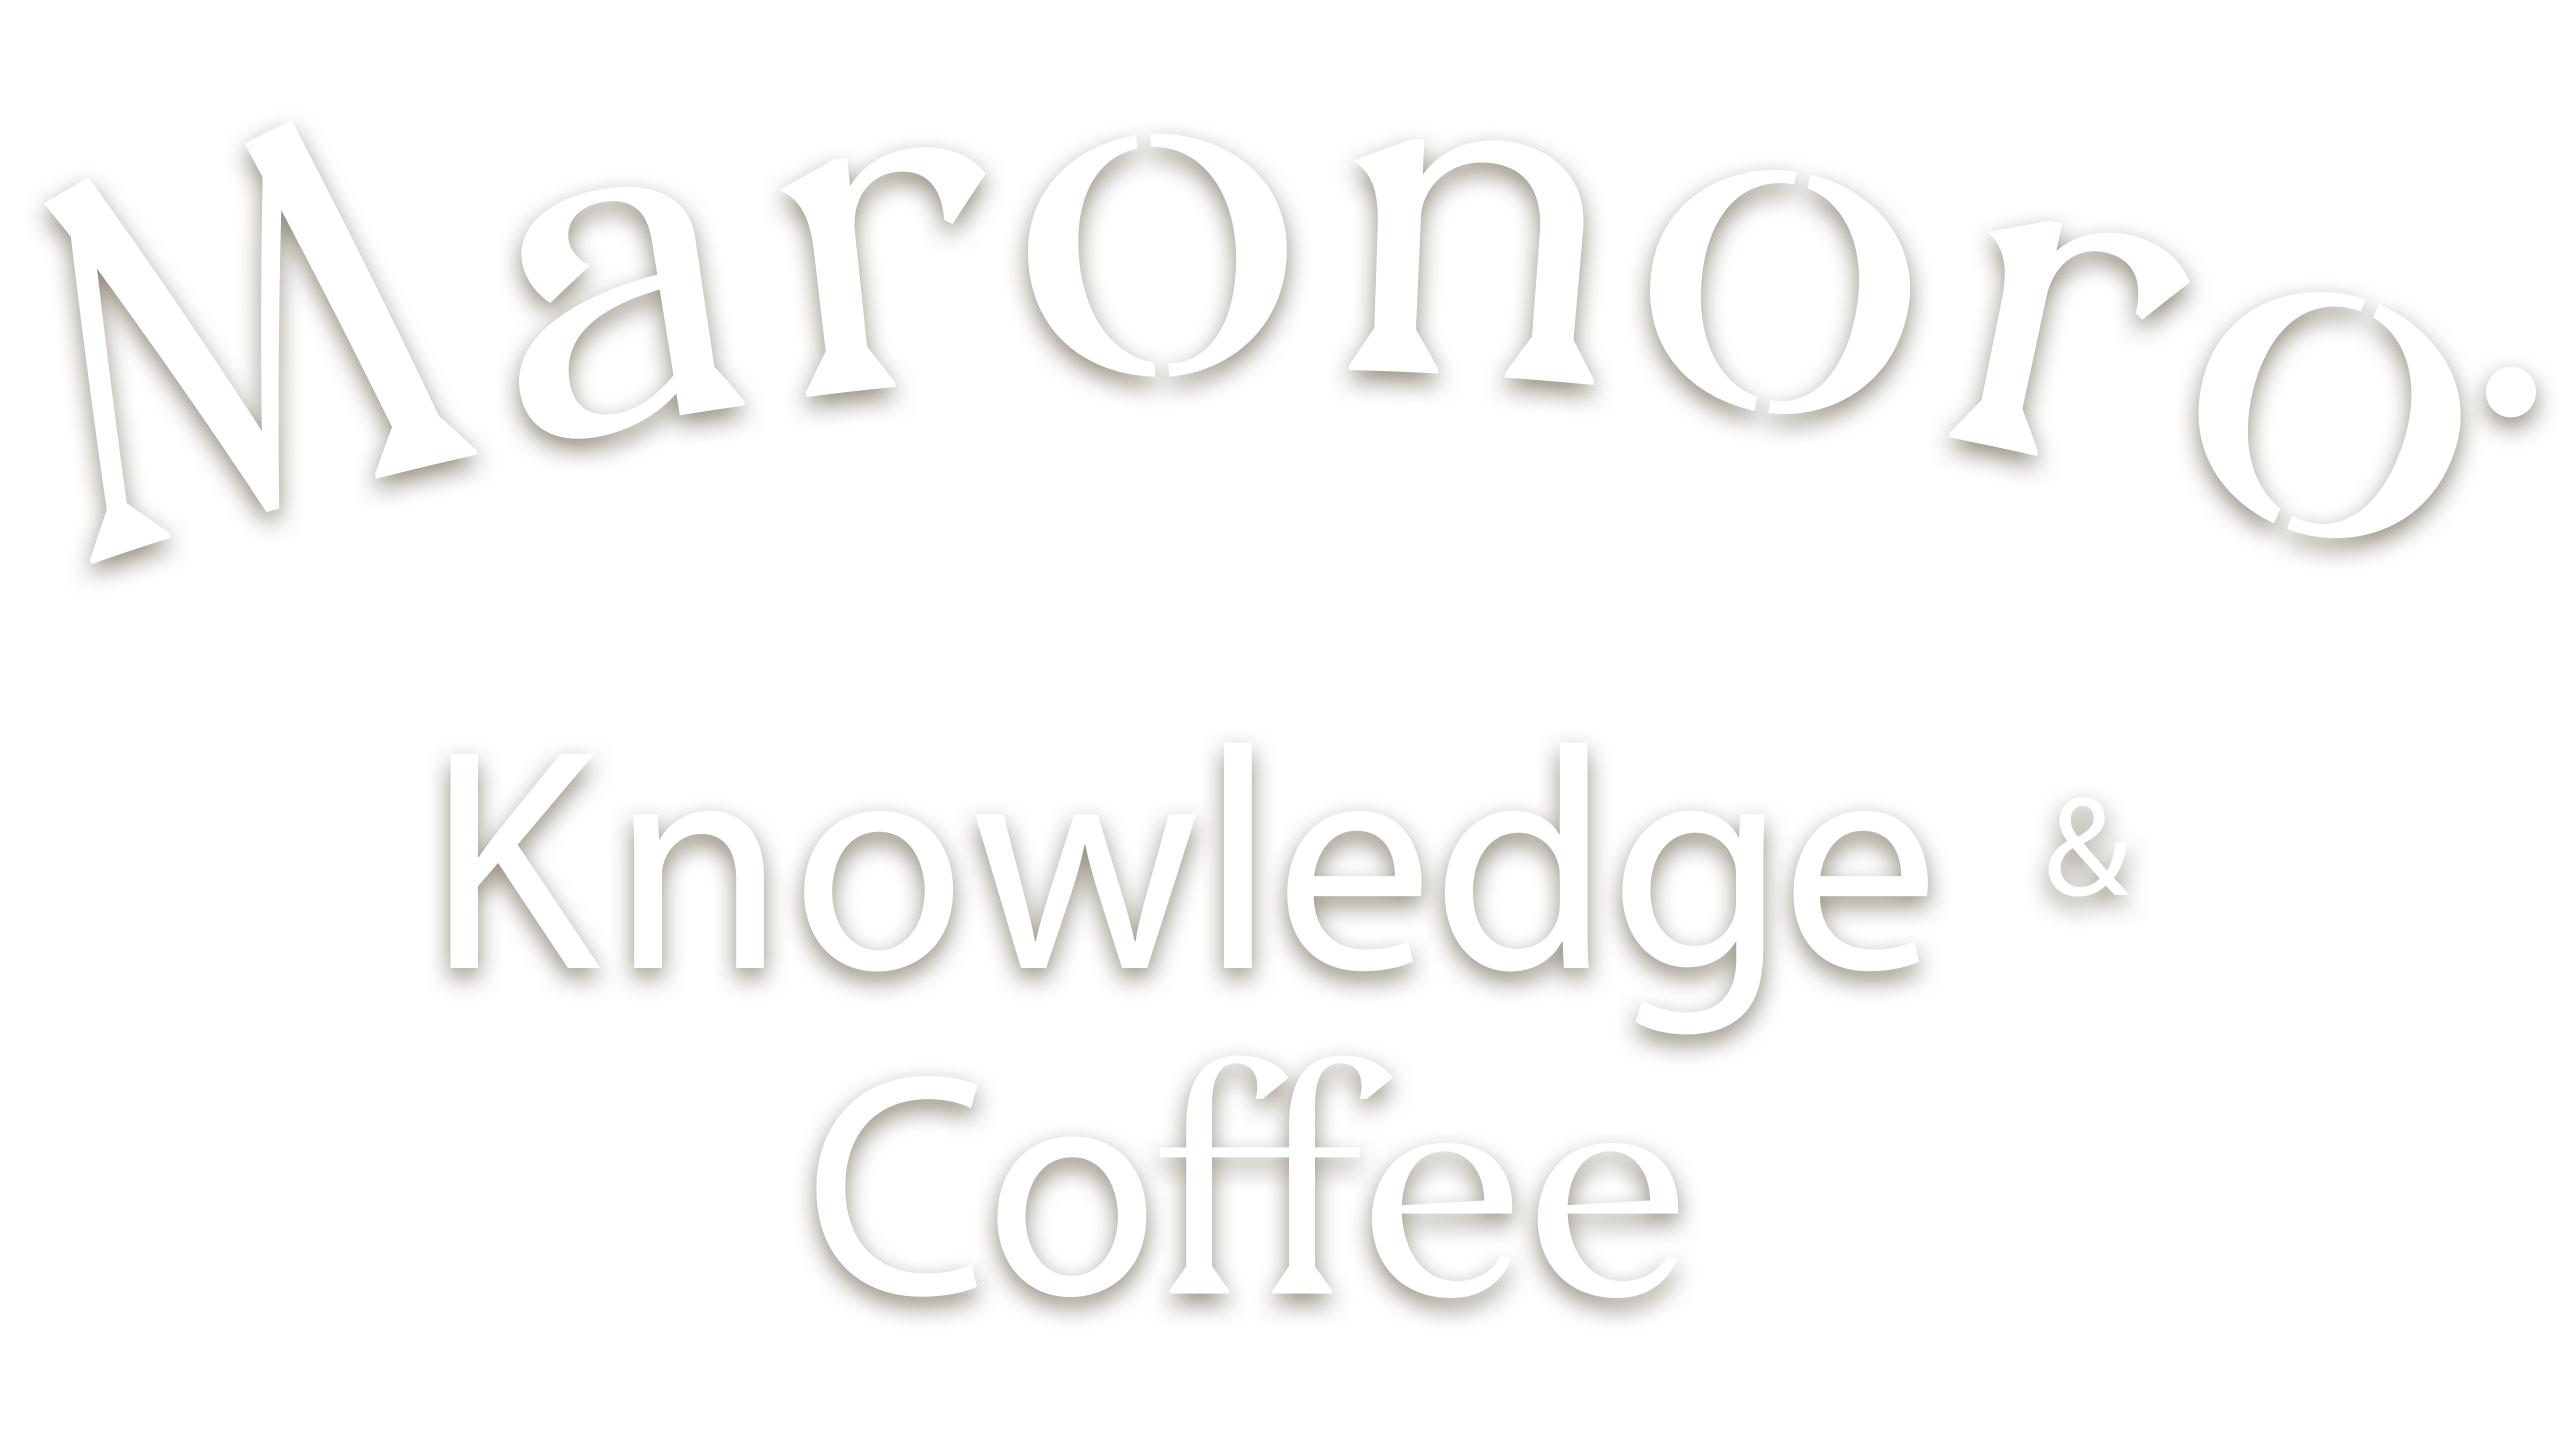 Maronoro - Knowledge & Coffee